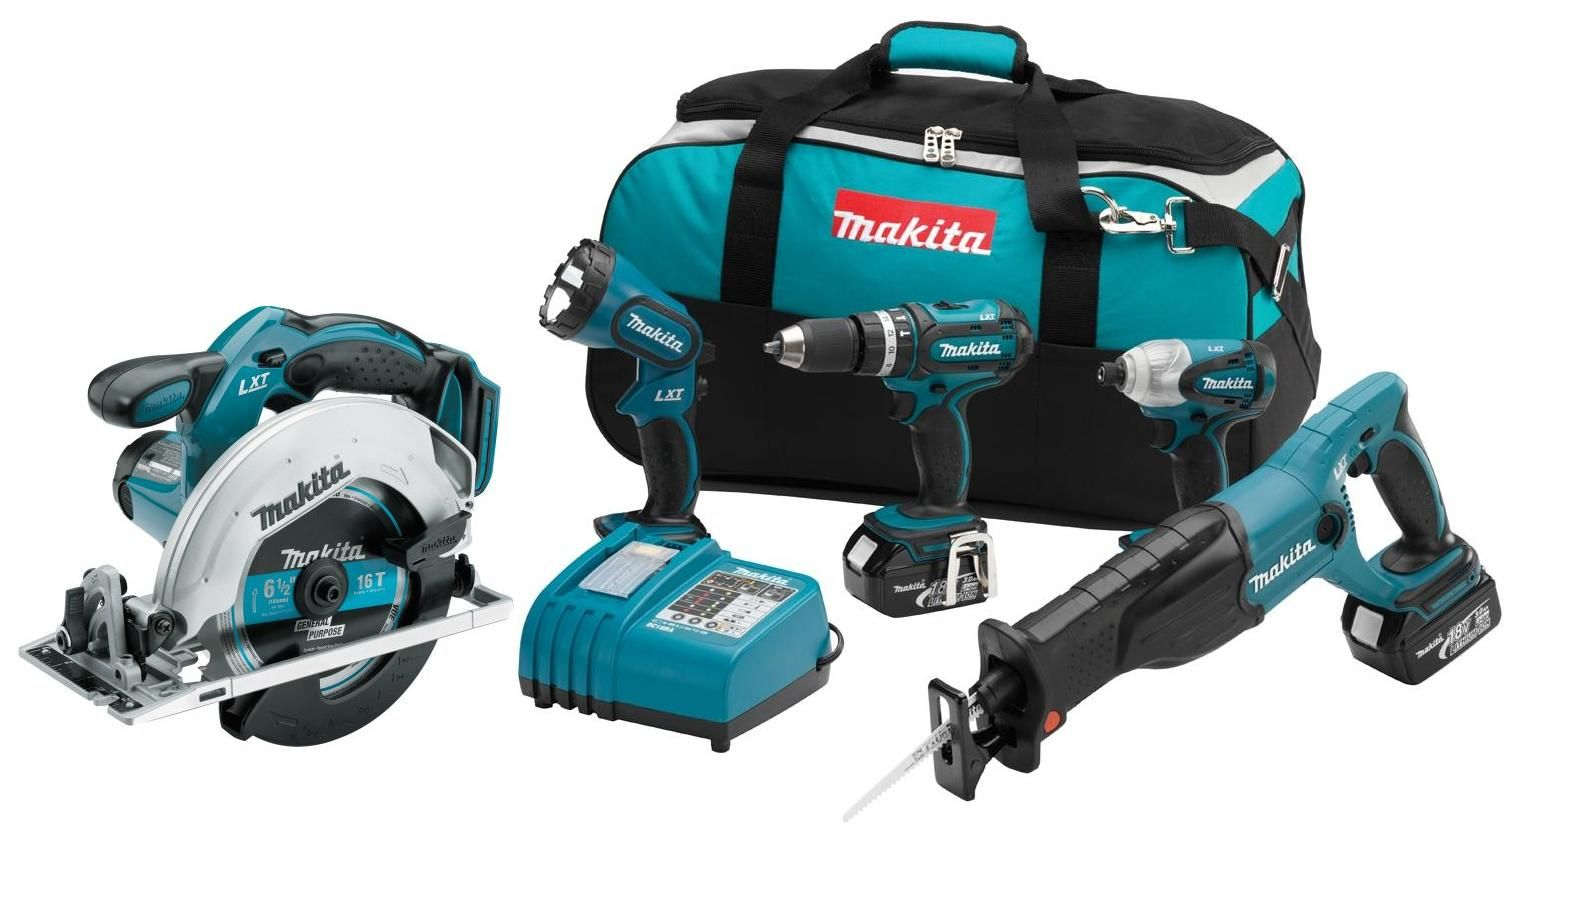 my Makita 18v tool set Combo kit, Makita, Cordless drill